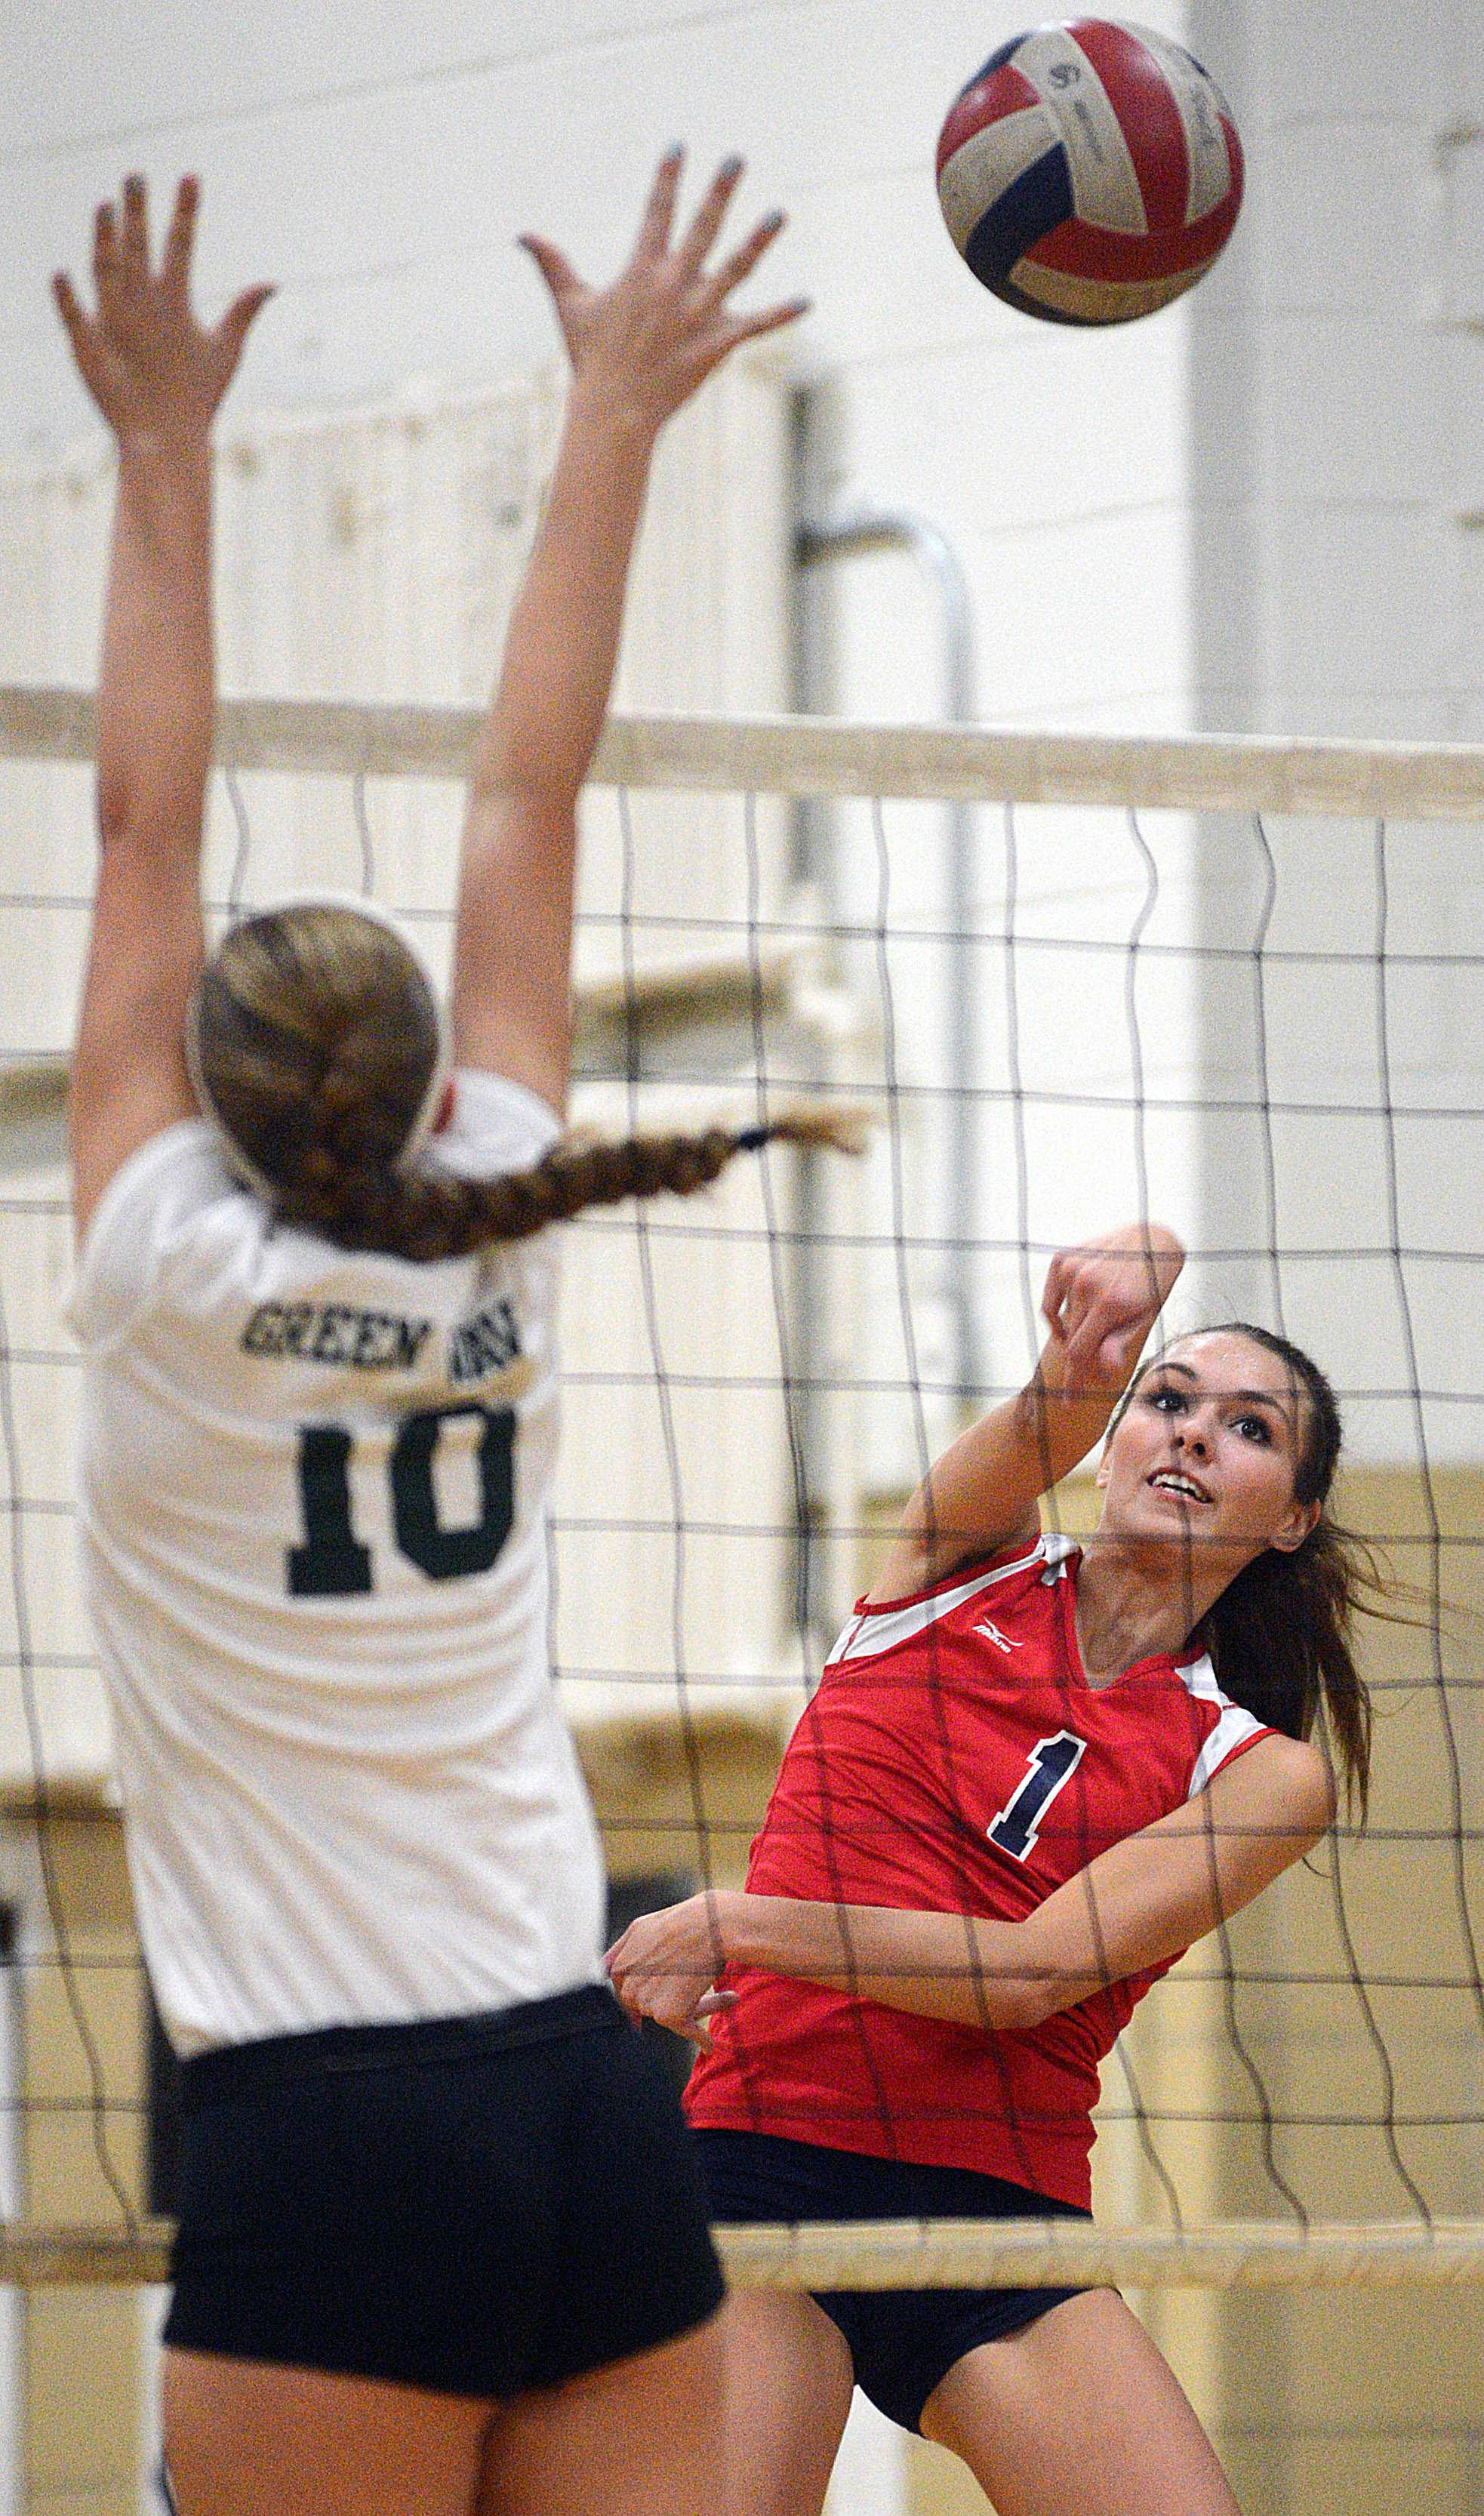 South Elgin's Katie Innis, right, hits the ball past St. Edward's Samantha Boydston during volleyball at St. Edward on Wednesday evening.